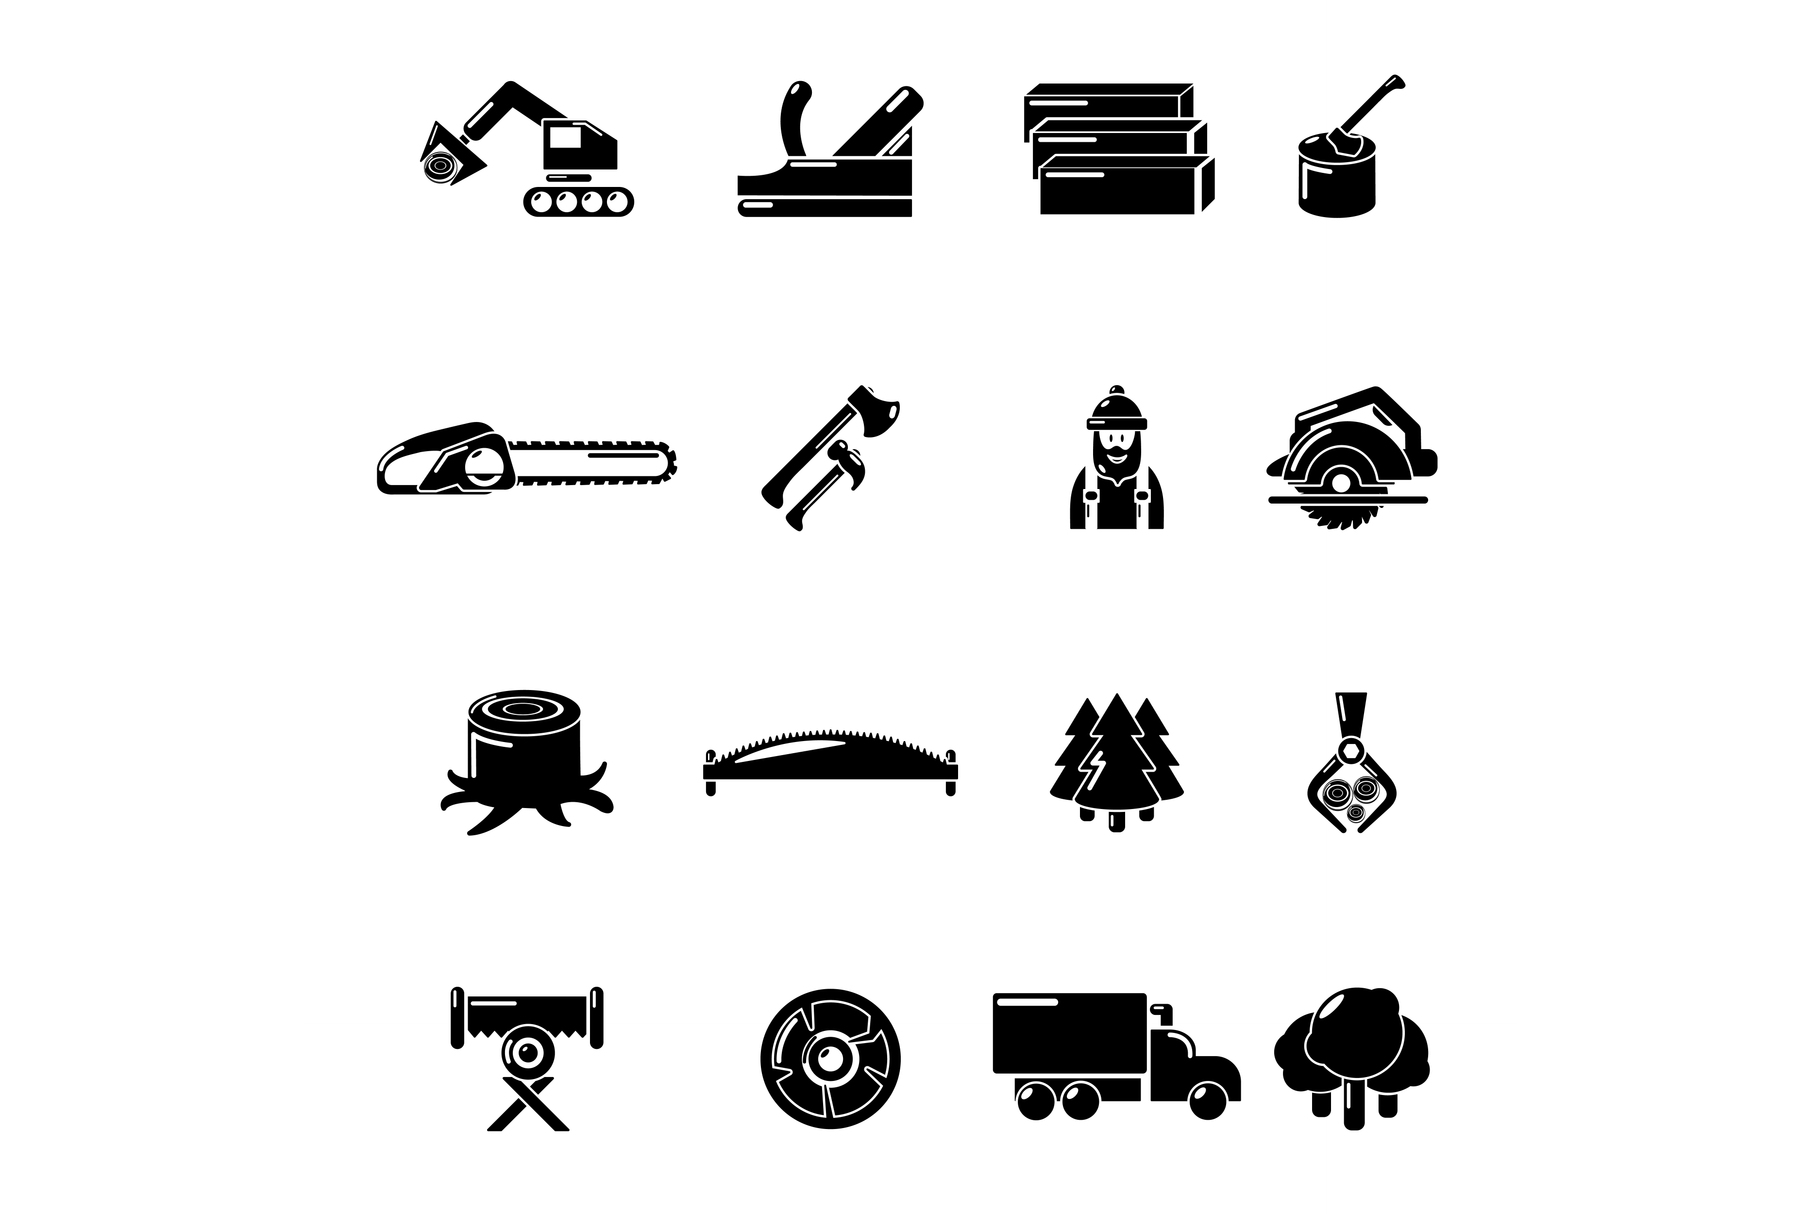 Timber industry icons set, simple style example image 1